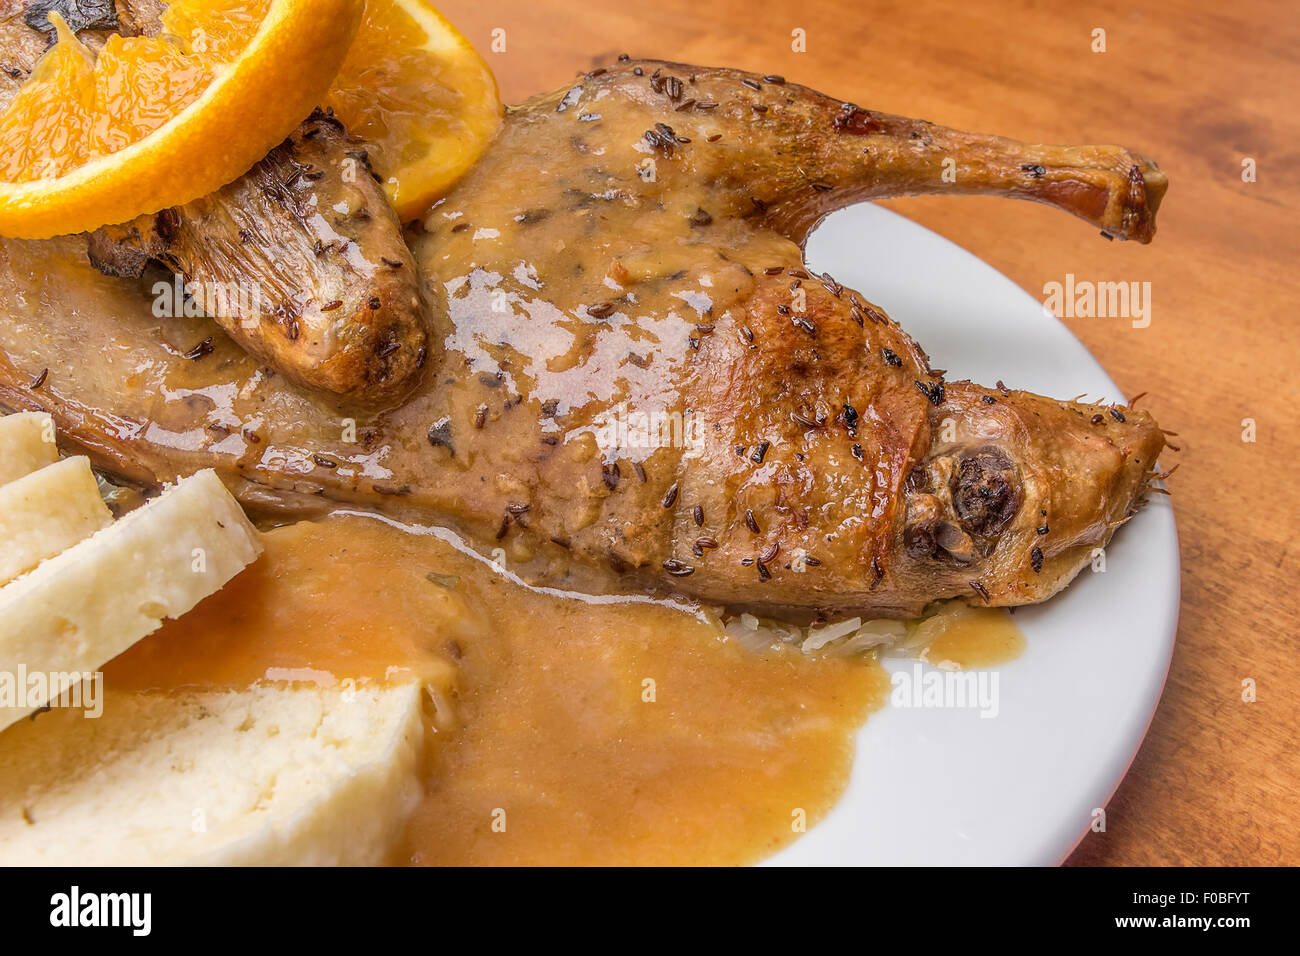 Typische Slowakische Küche Czech Cuisine Stockfotos And Czech Cuisine Bilder Alamy